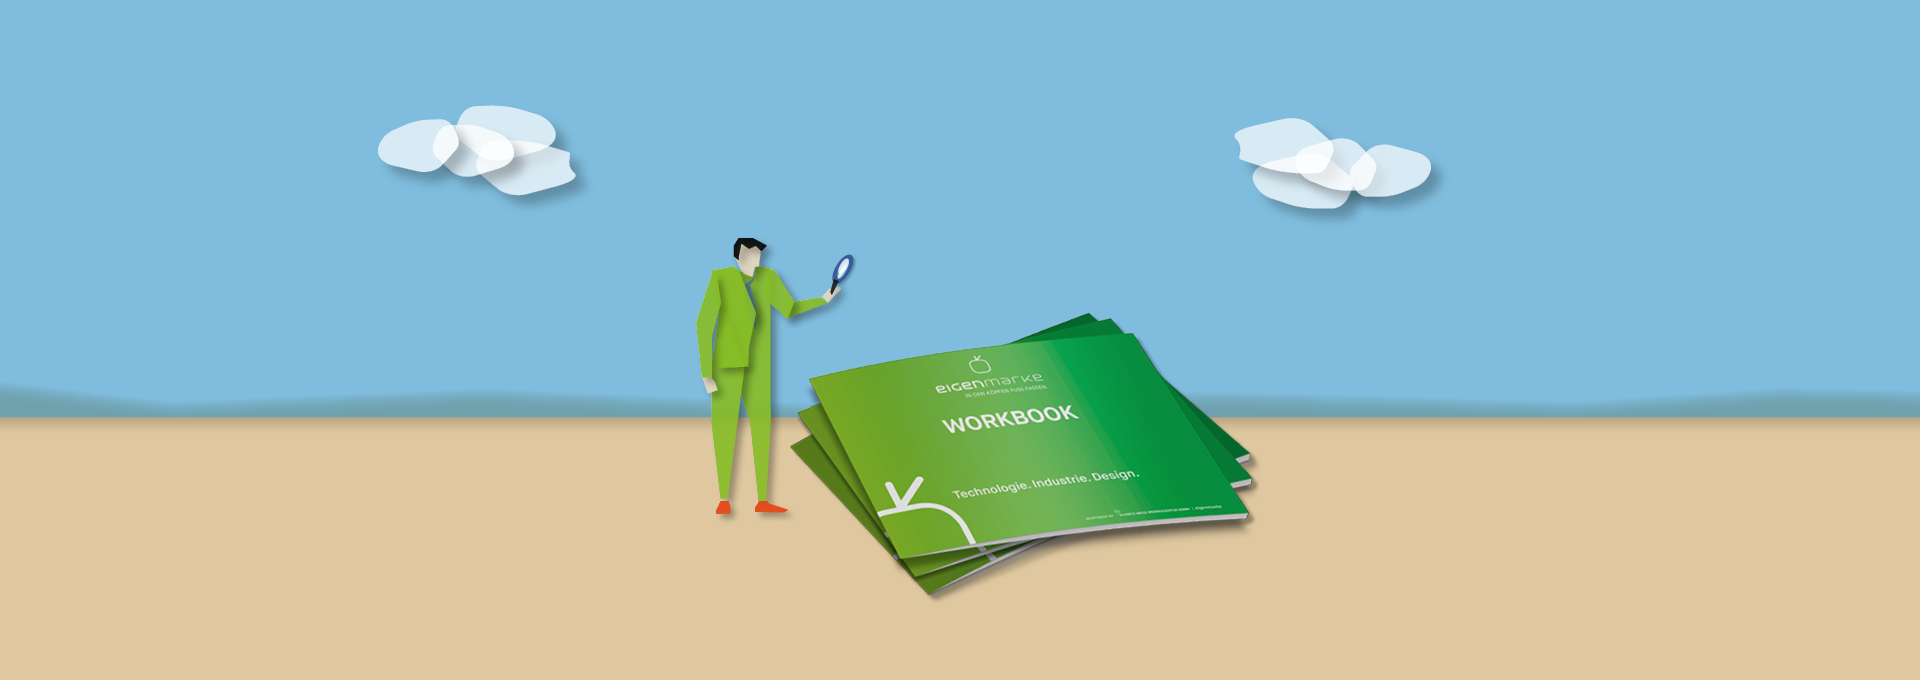 Workbook Slider Illustration